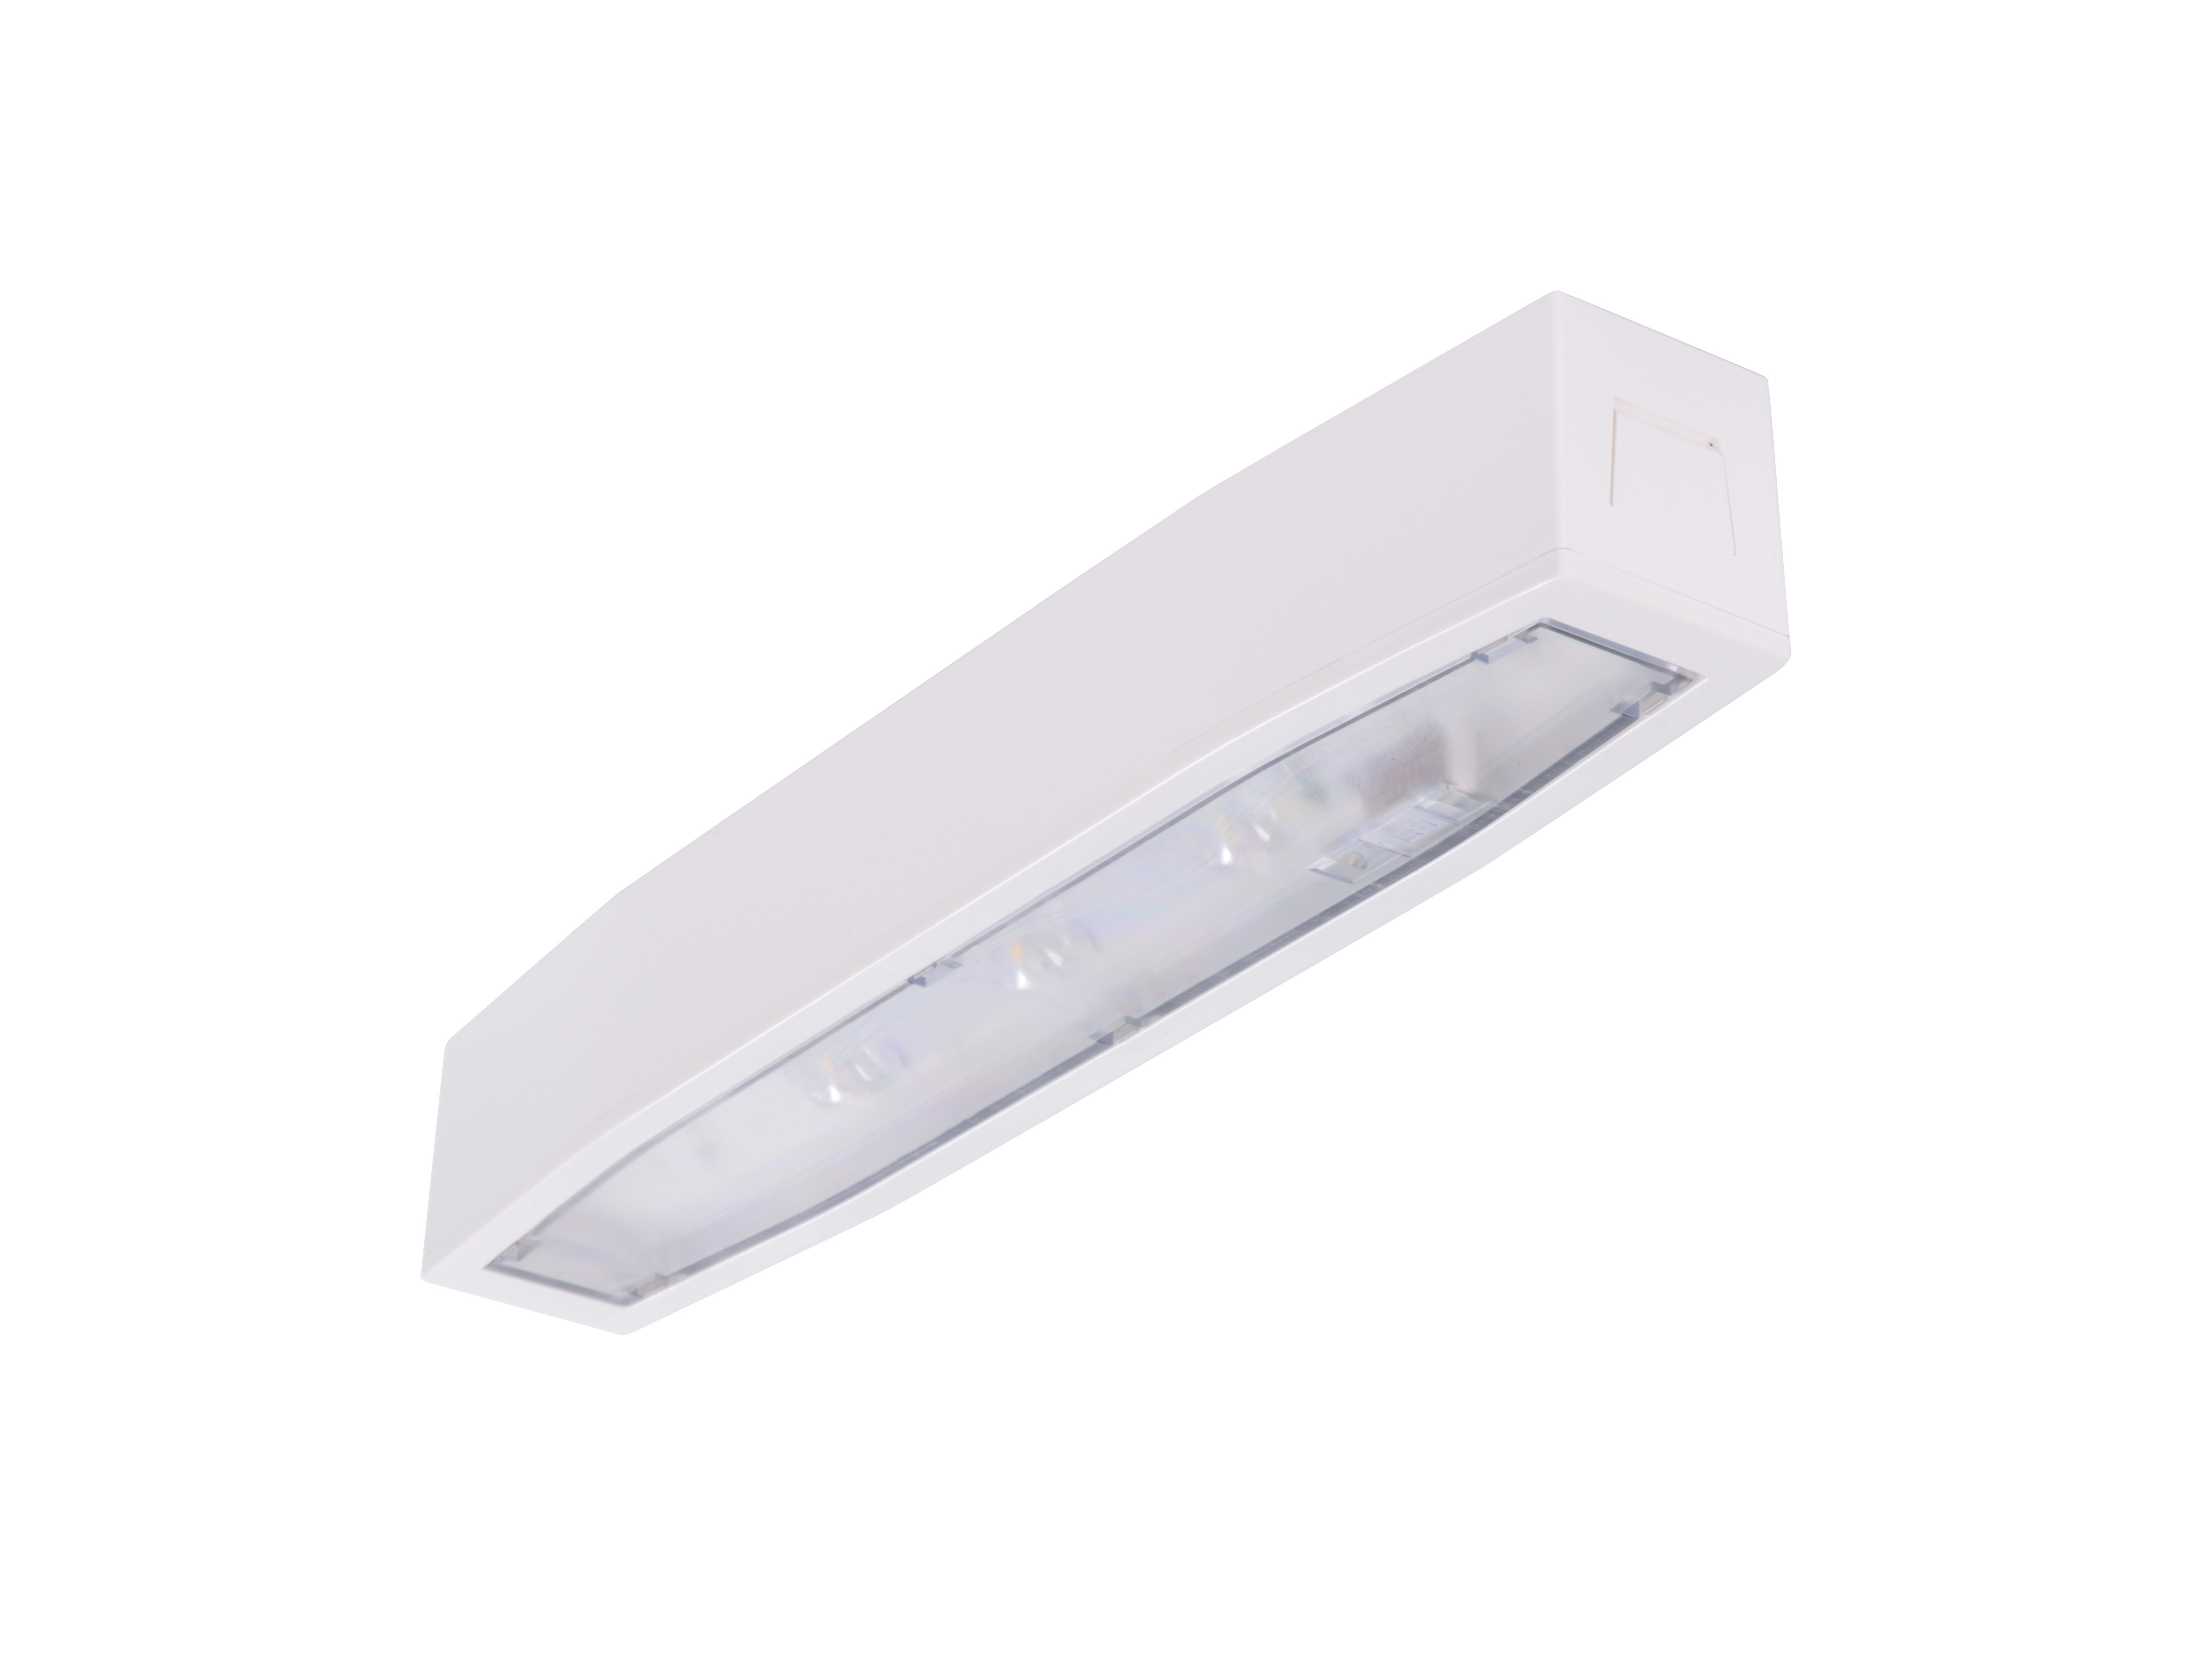 Lampa emergenta led Intelight 94512   3h mentinut test automat 0